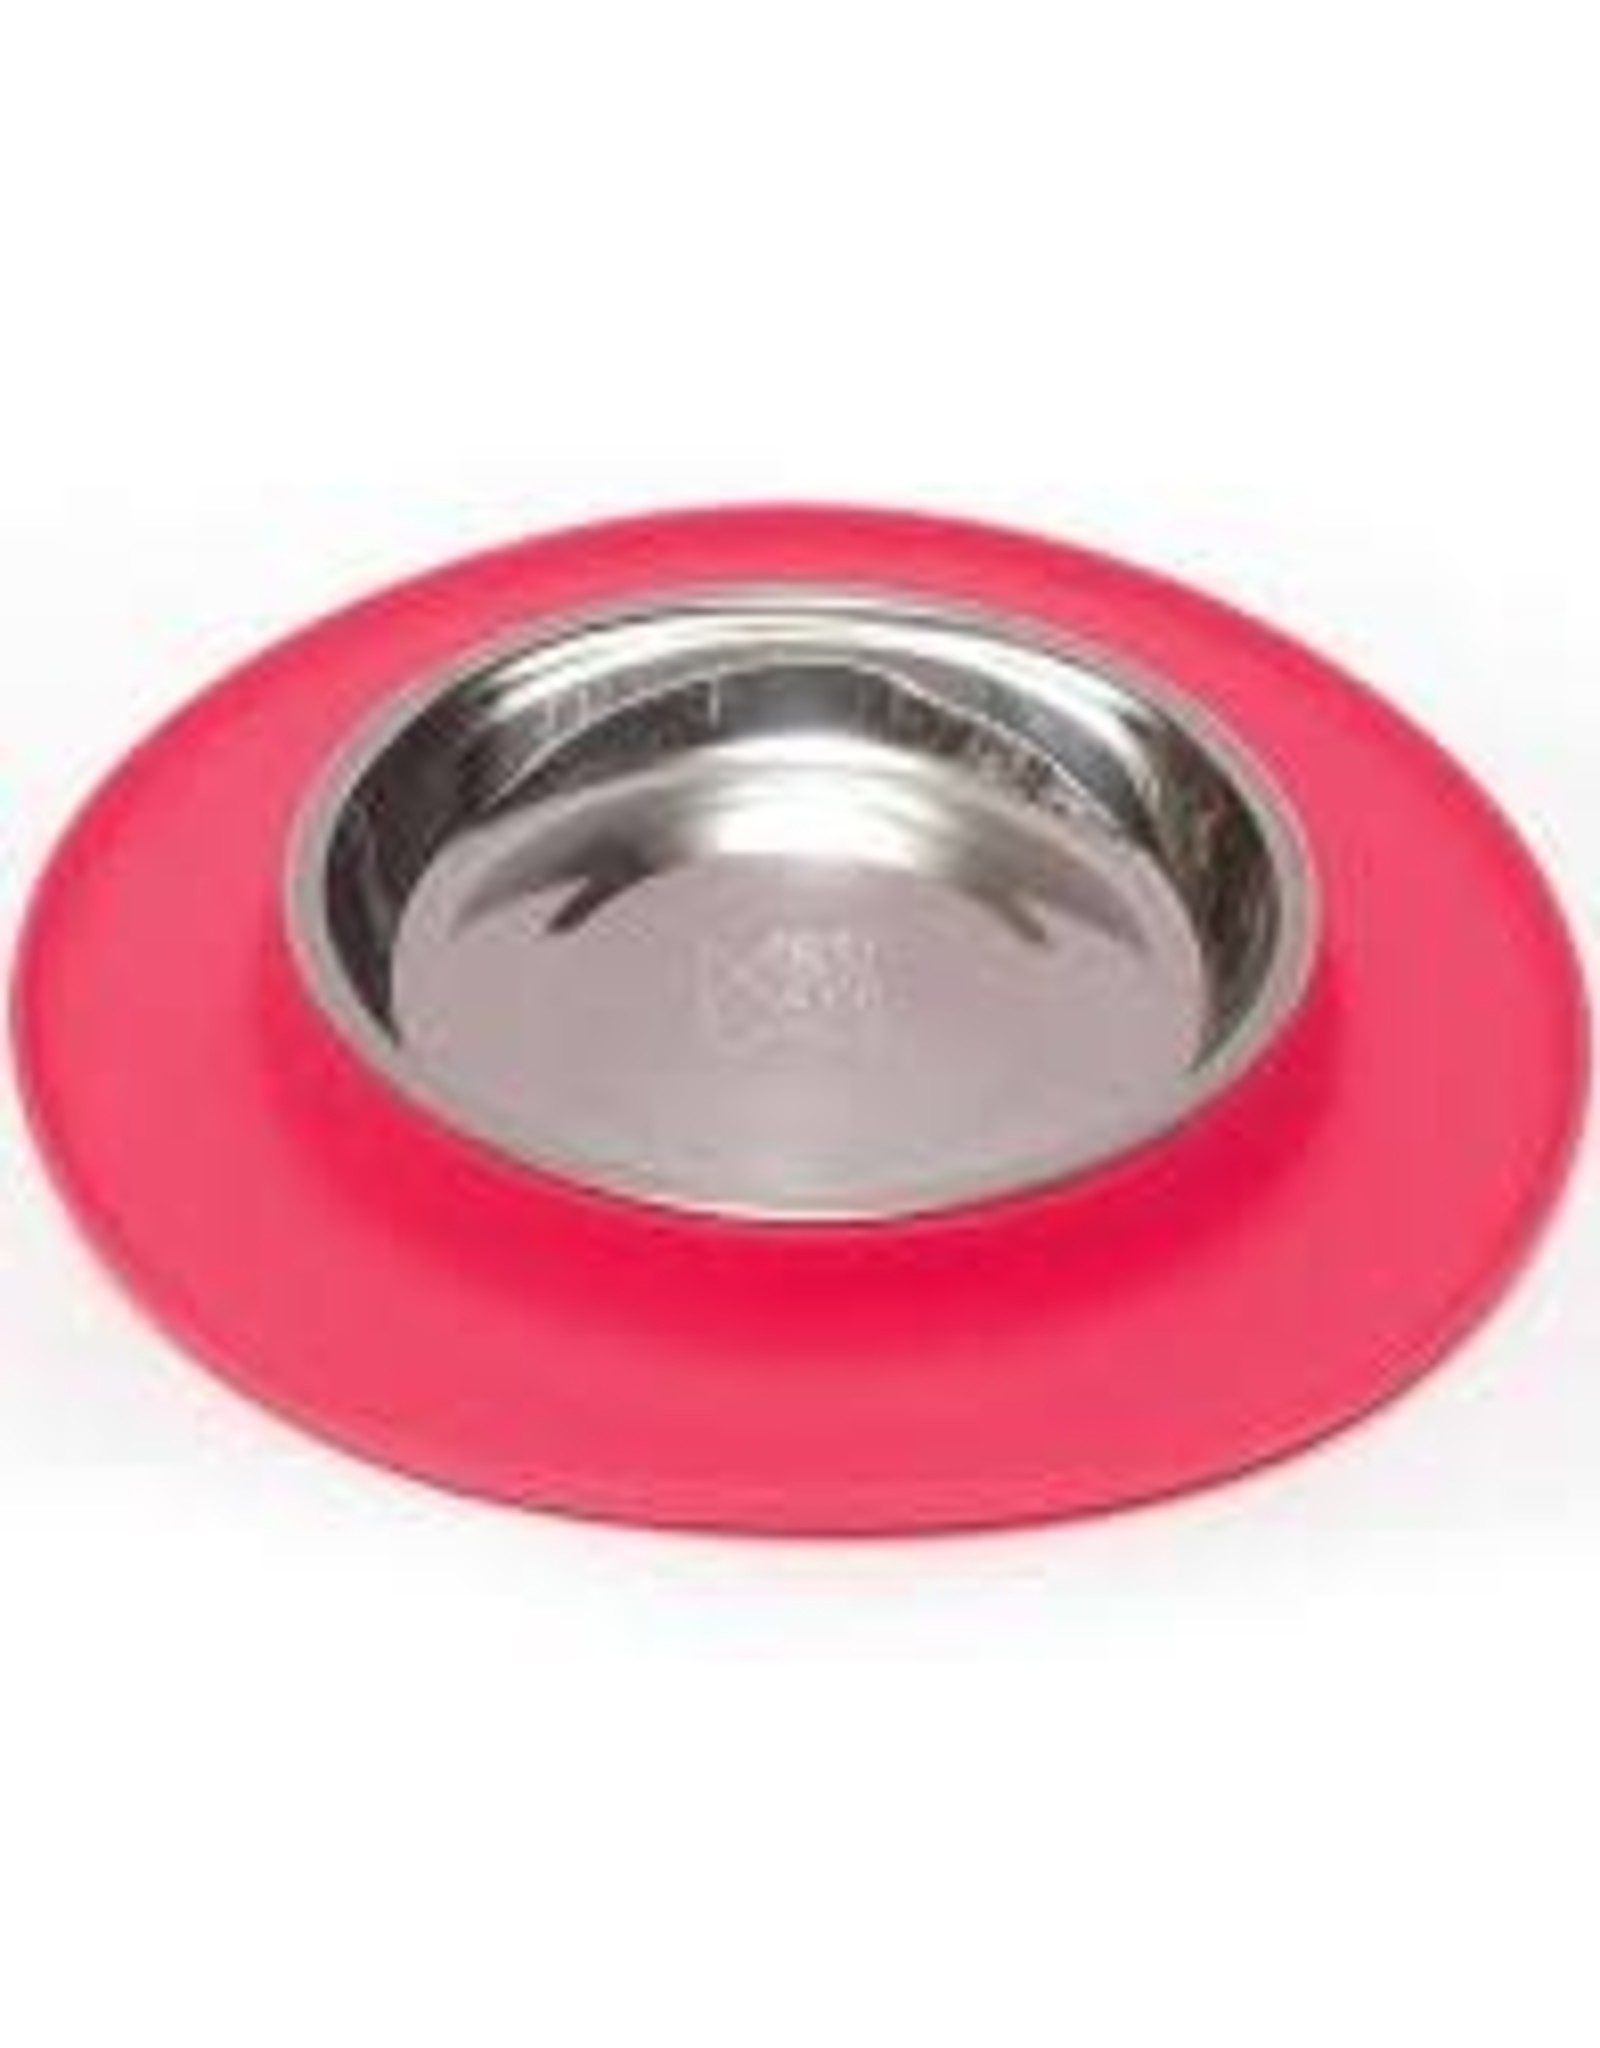 Messy Cats Silicone Single Feeder 1.75 Cup Watermelon